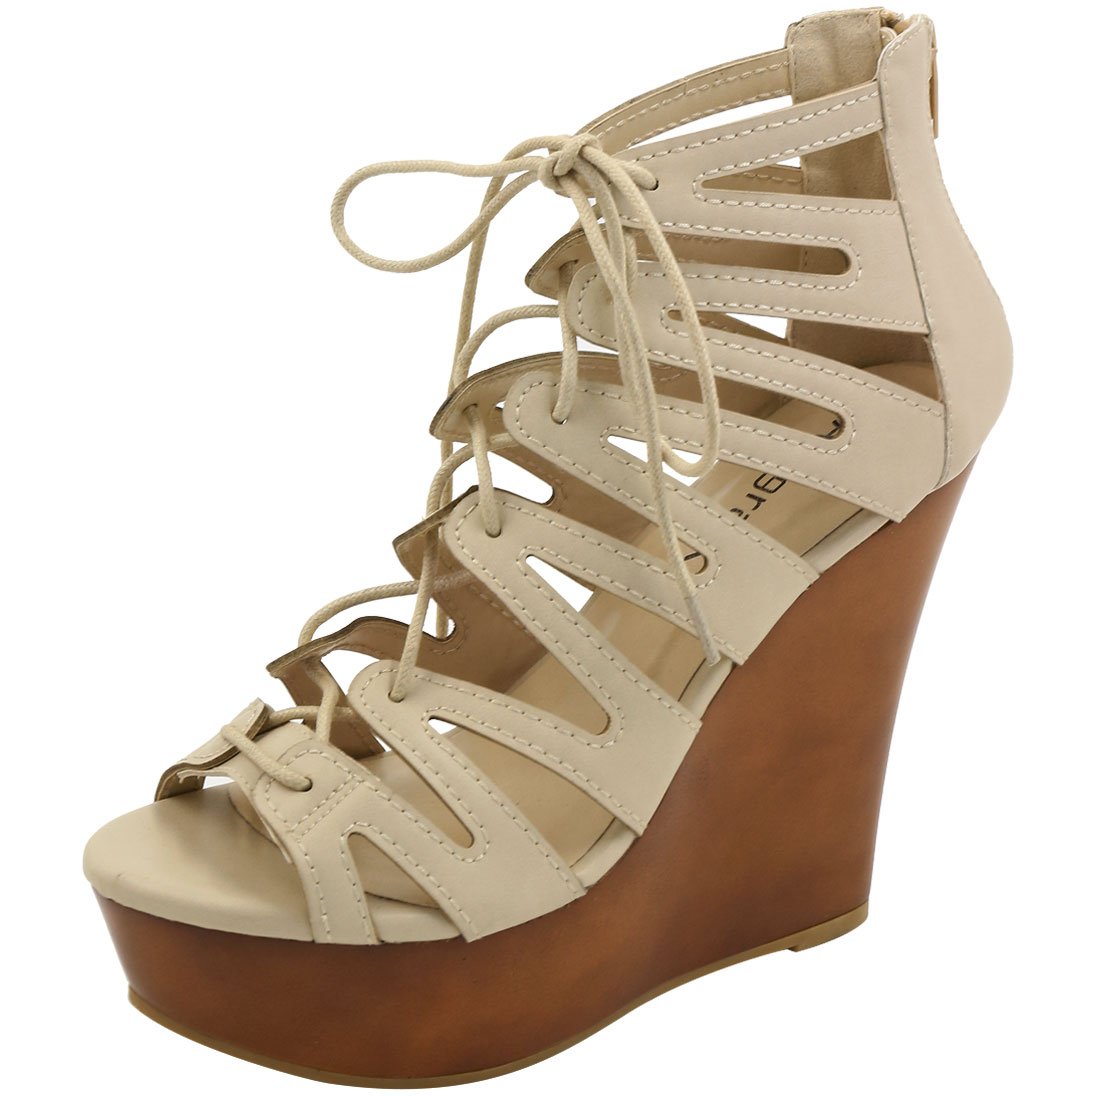 Woman Open Toe Lace-Up Cutout Platform Wedge Sandals Beige US 11